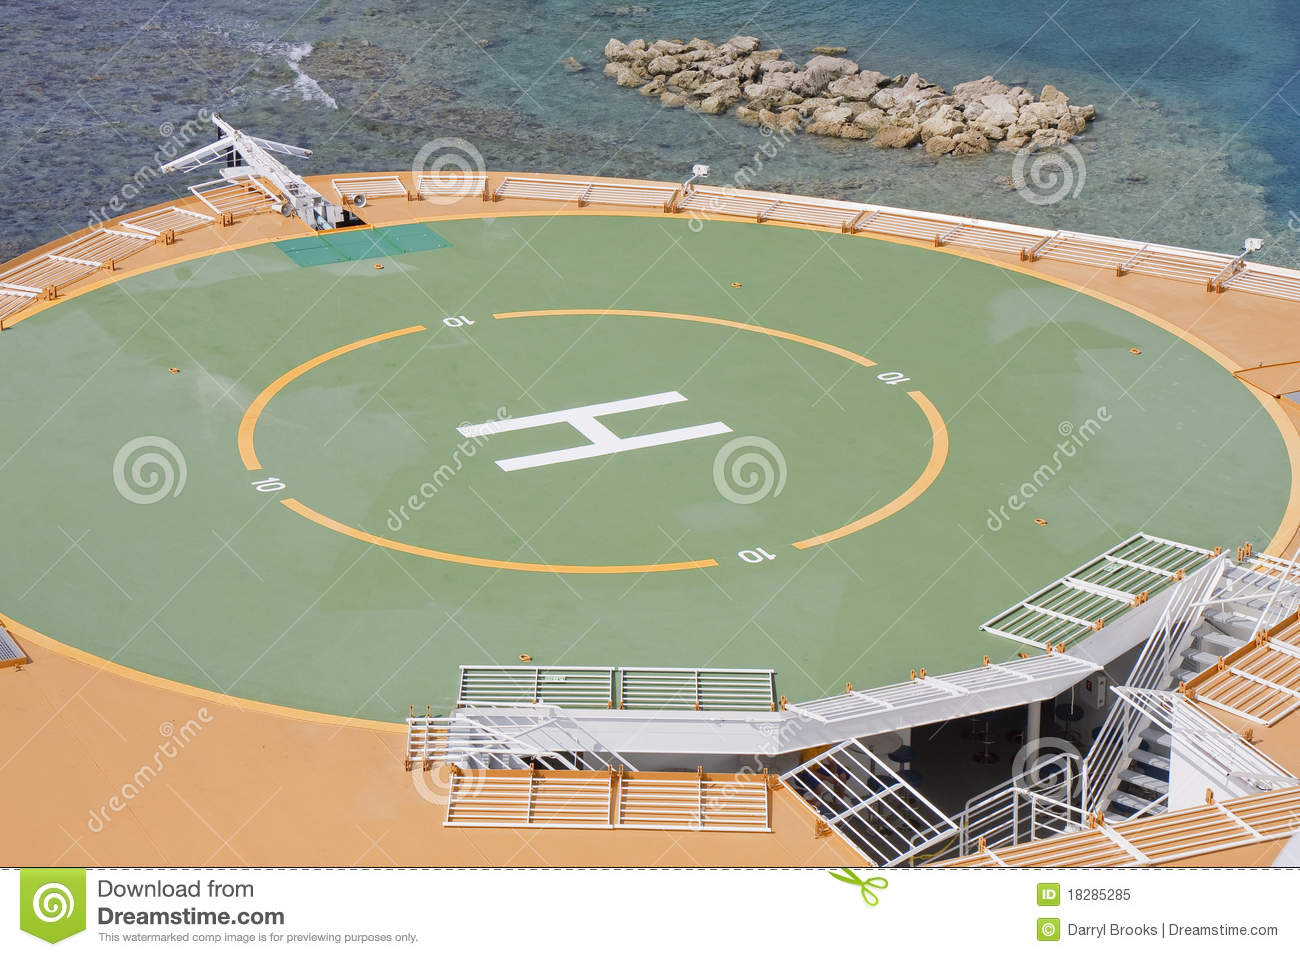 heli landing pad with Royalty Free Stock Photo Helicopter Pad Over Shallow Water Image18285285 on 87259 Helipad also Royalty Free Stock Photo Helicopter Pad Over Shallow Water Image18285285 furthermore Article 4482 in addition Showthread also Part3 Standards 325 325 160.